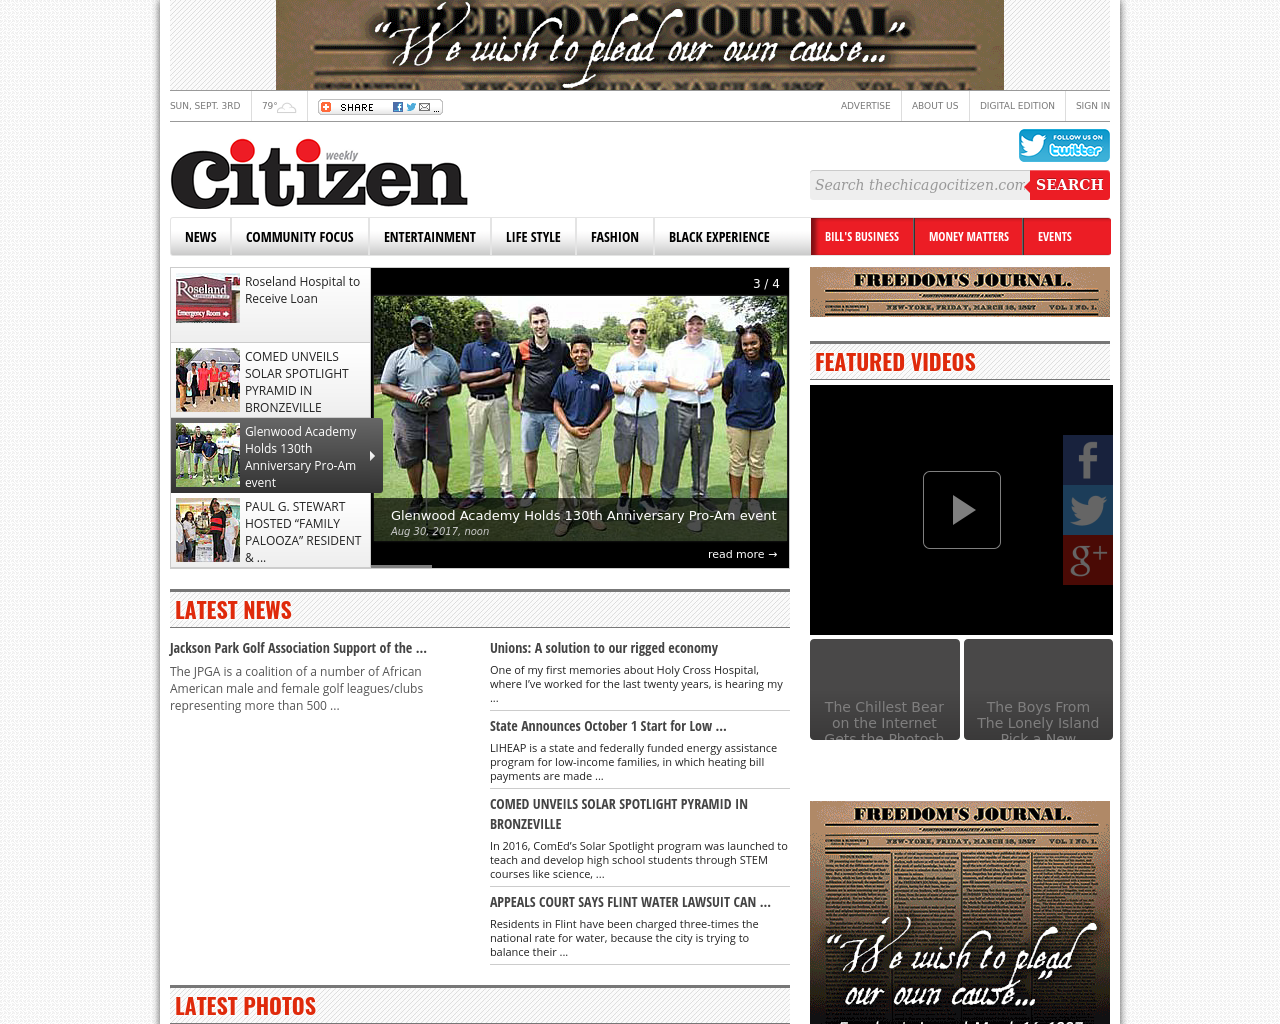 The-Chicago-Citizen-Advertising-Reviews-Pricing